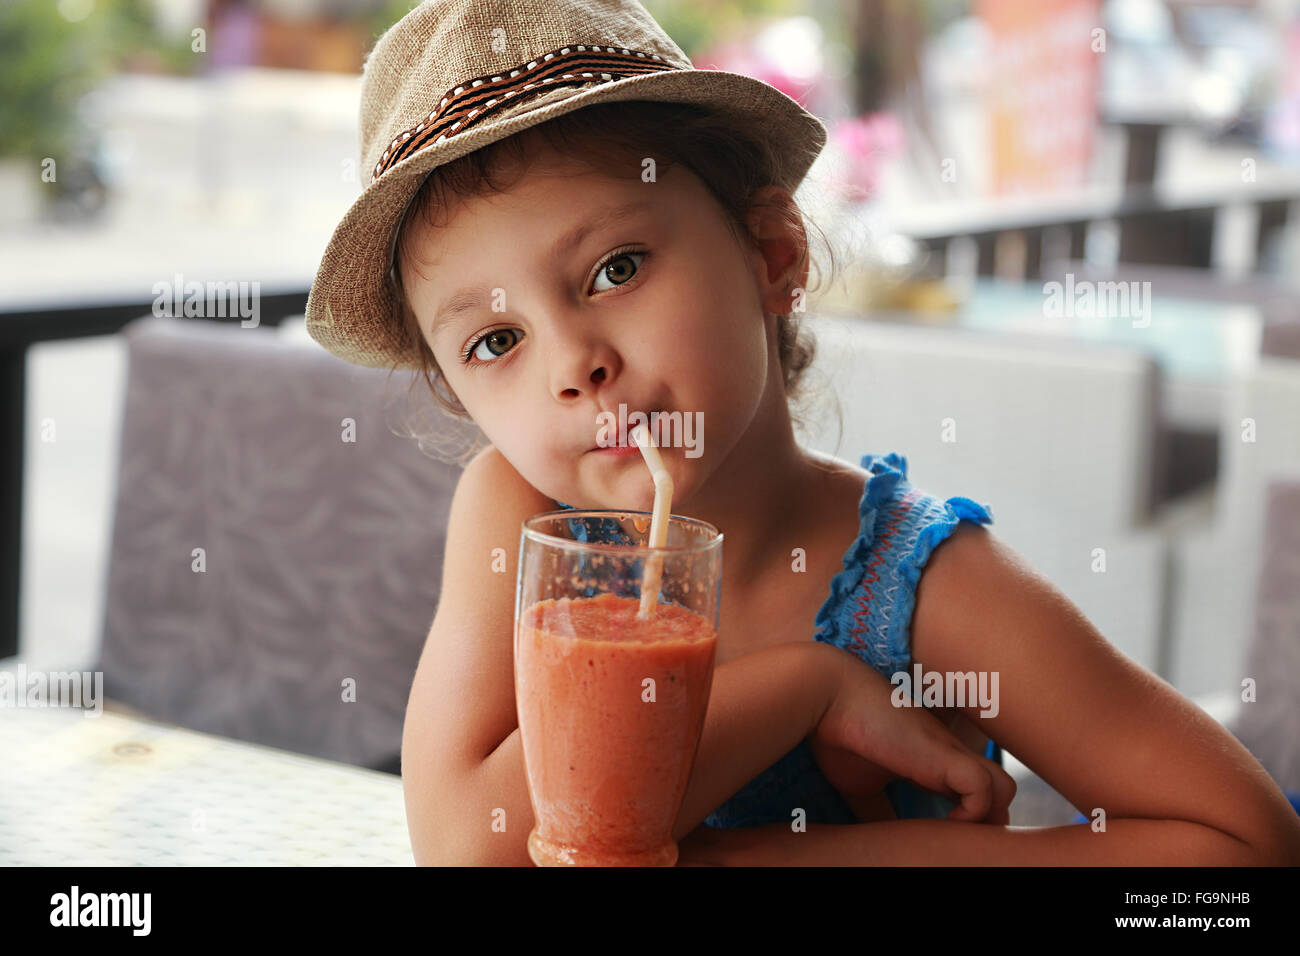 Fun cute kid girl drinking healthy smoothie juice in street restaurant. Closeup portrait - Stock Image